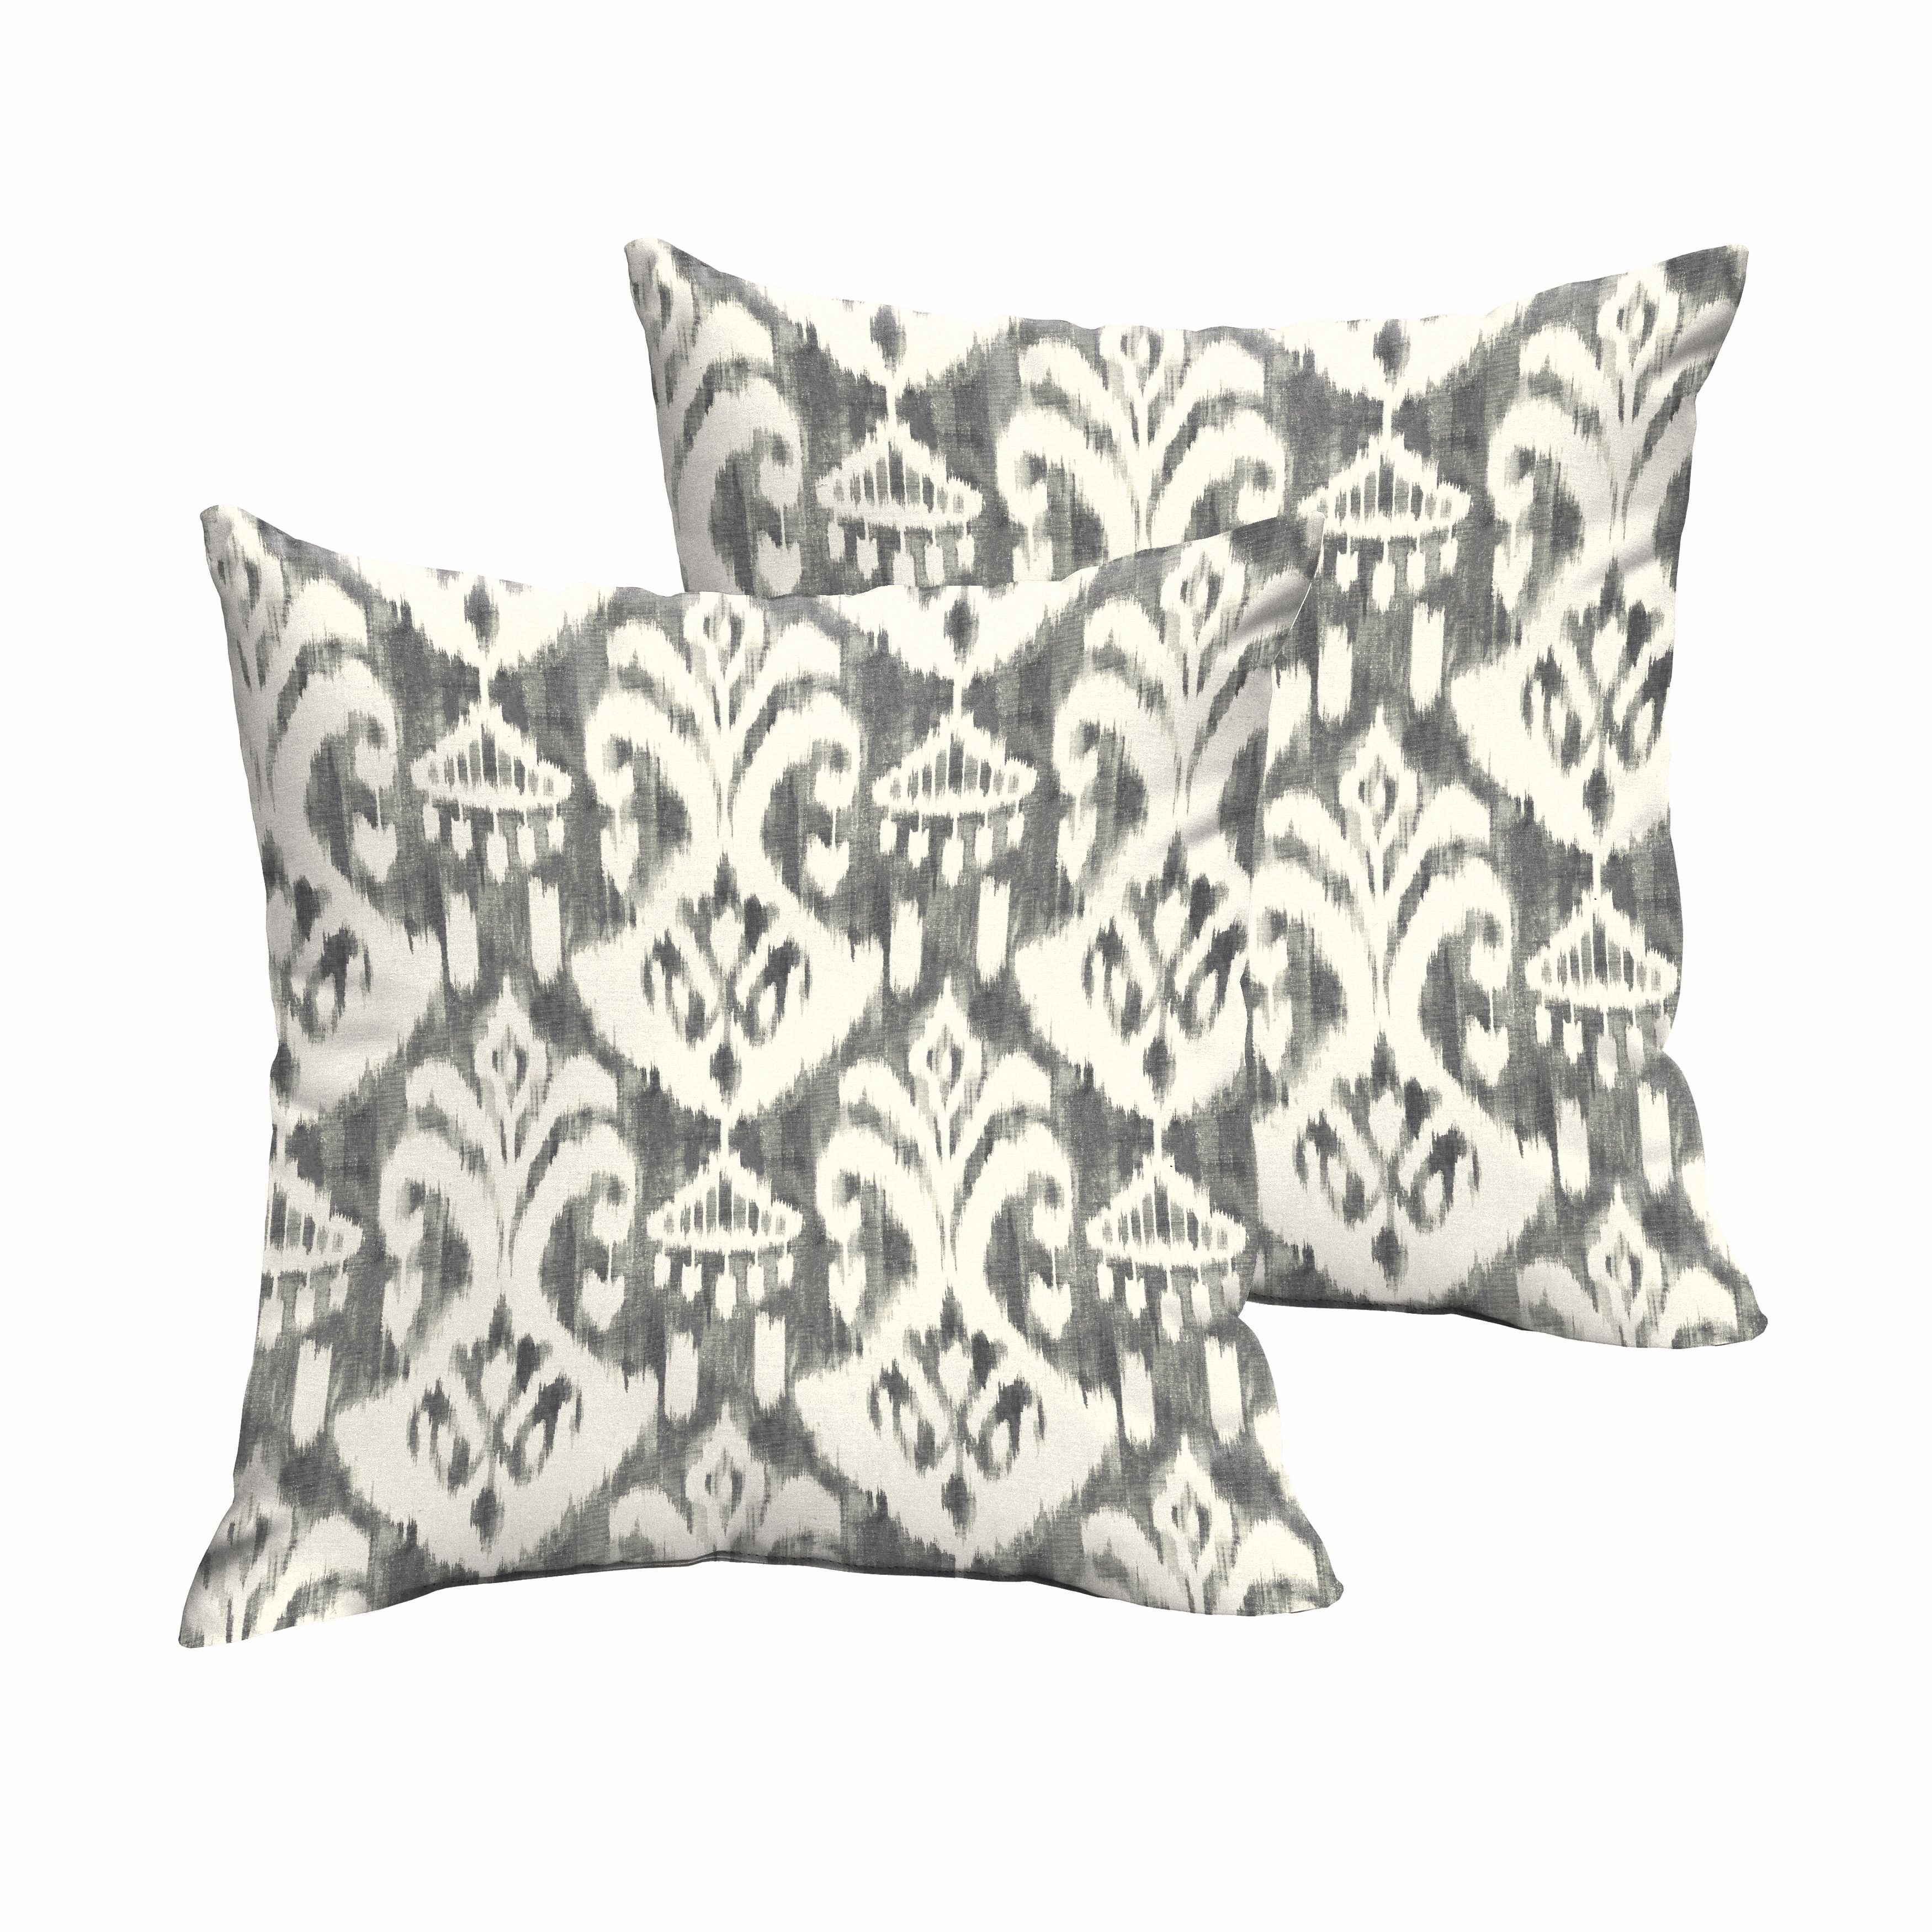 Grey Ikat Home Goods: Free Shipping on orders over $45 at Overstock.com - Your Home Goods Store! Get 5% in rewards with Club O!